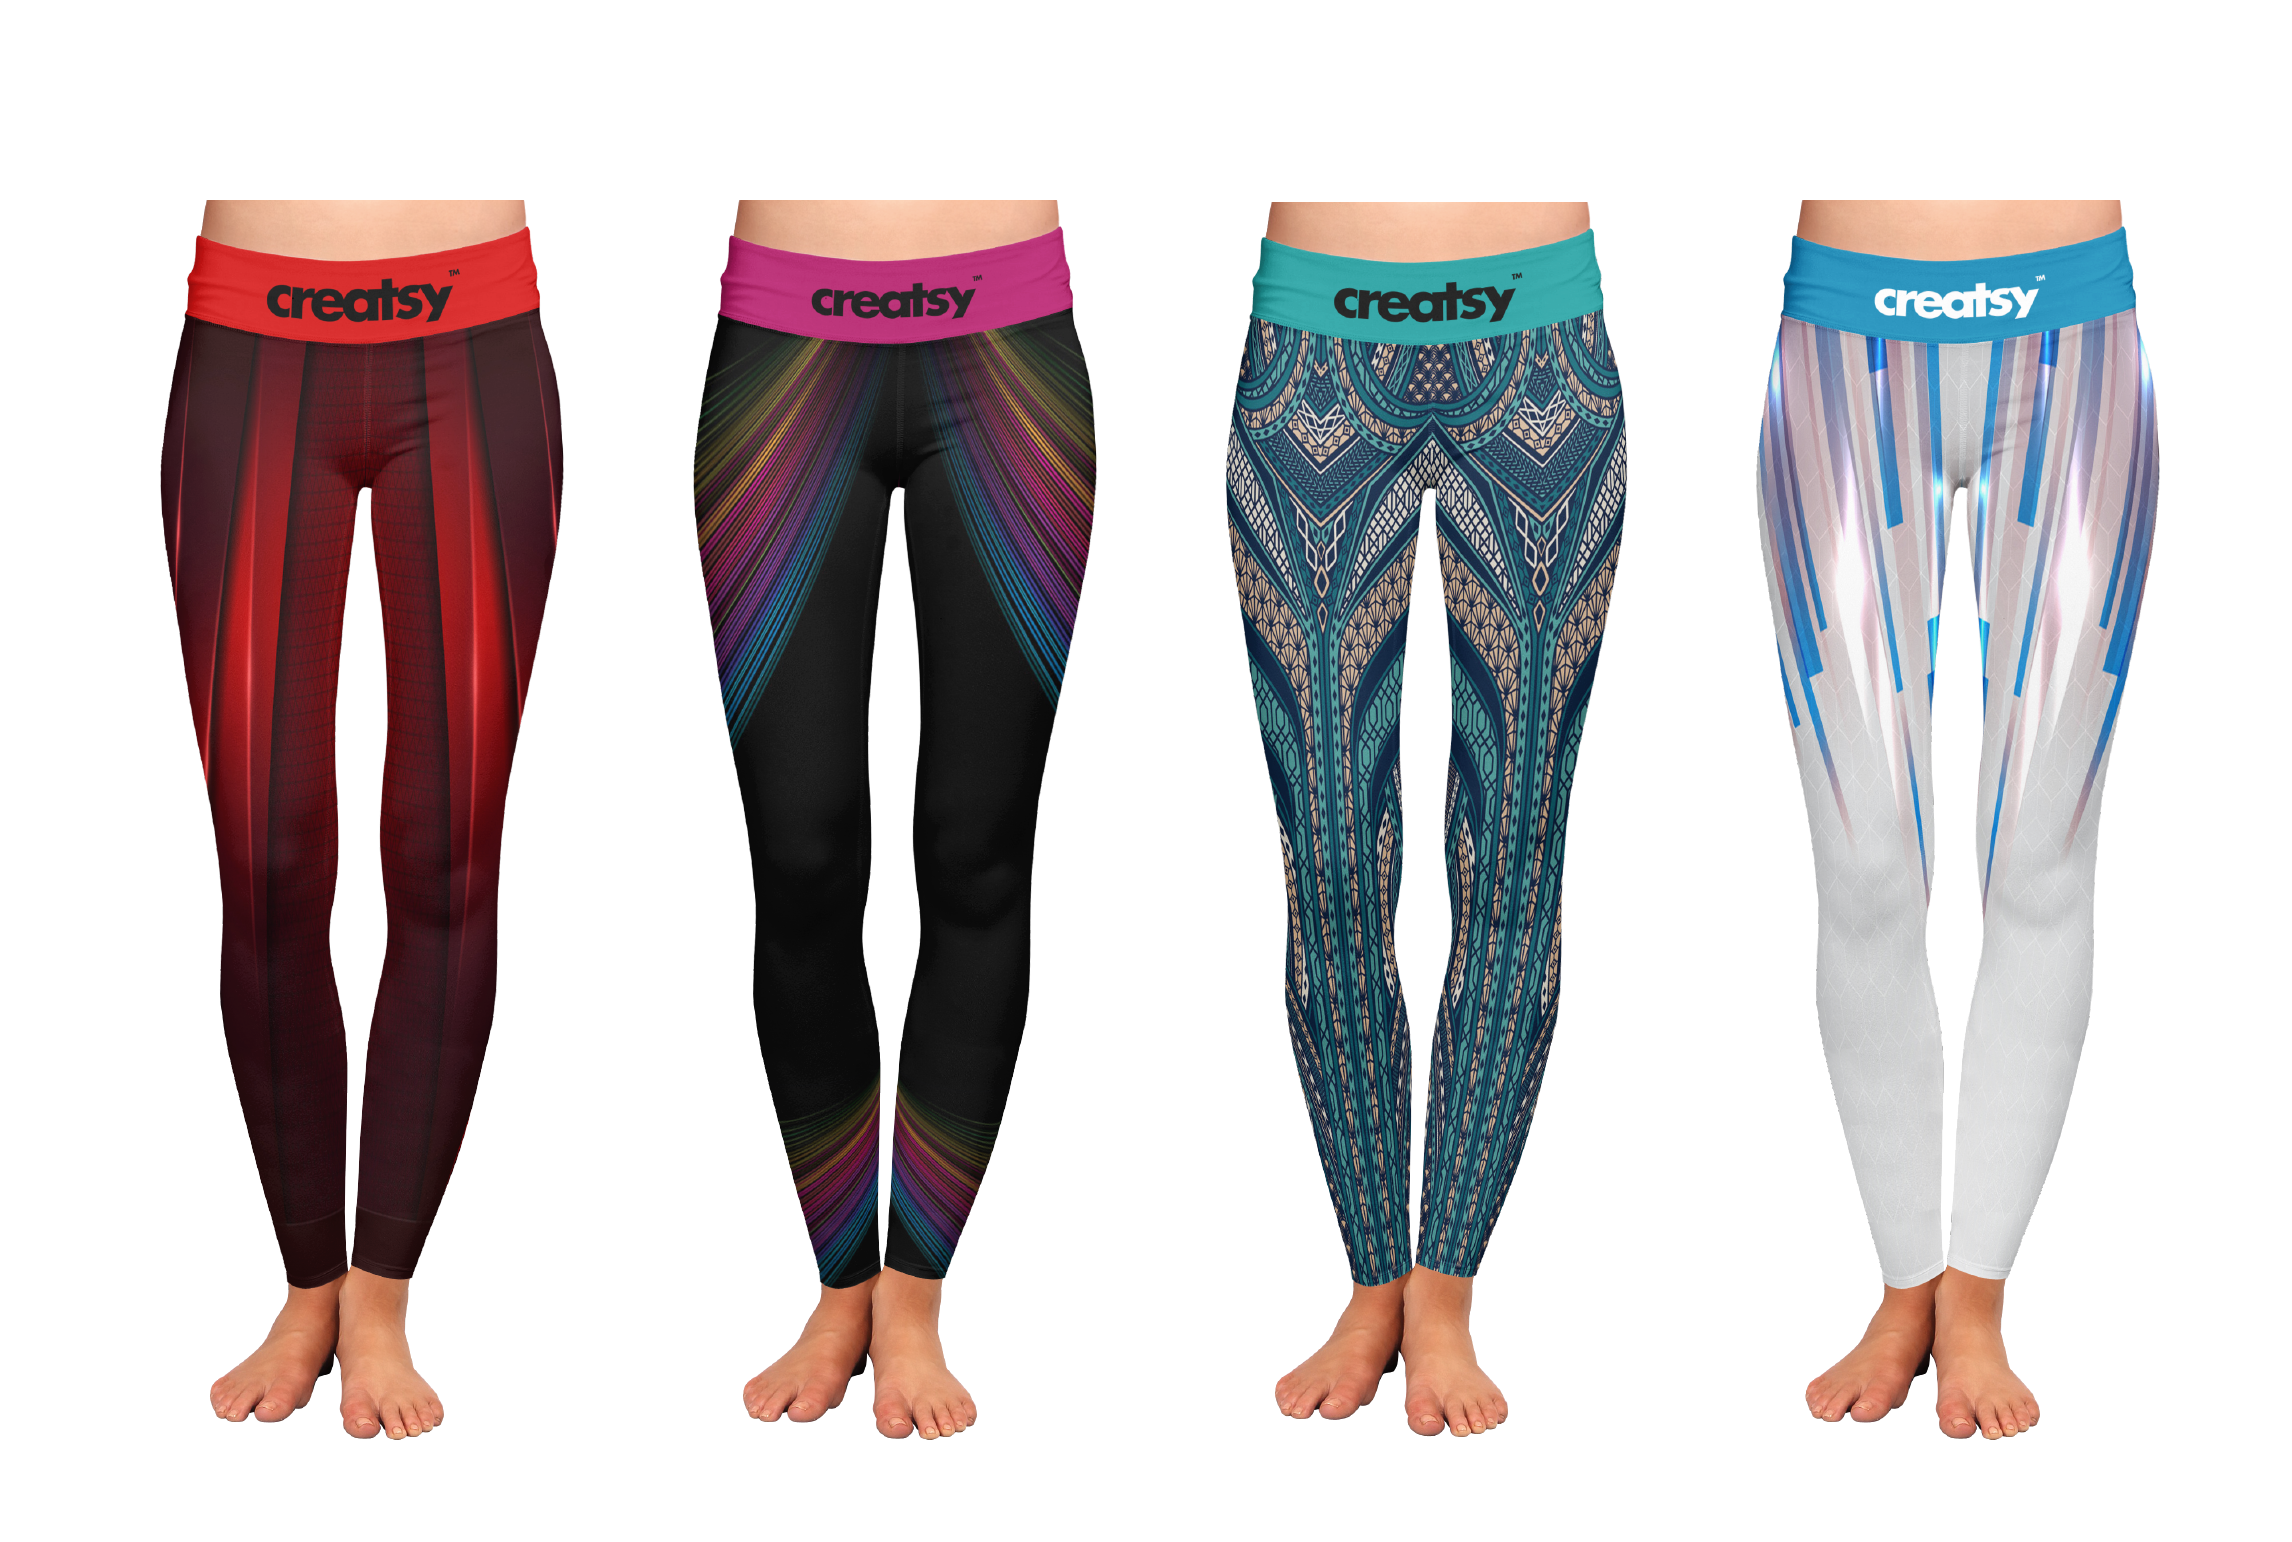 I will design leggings and yoga pants by pattern